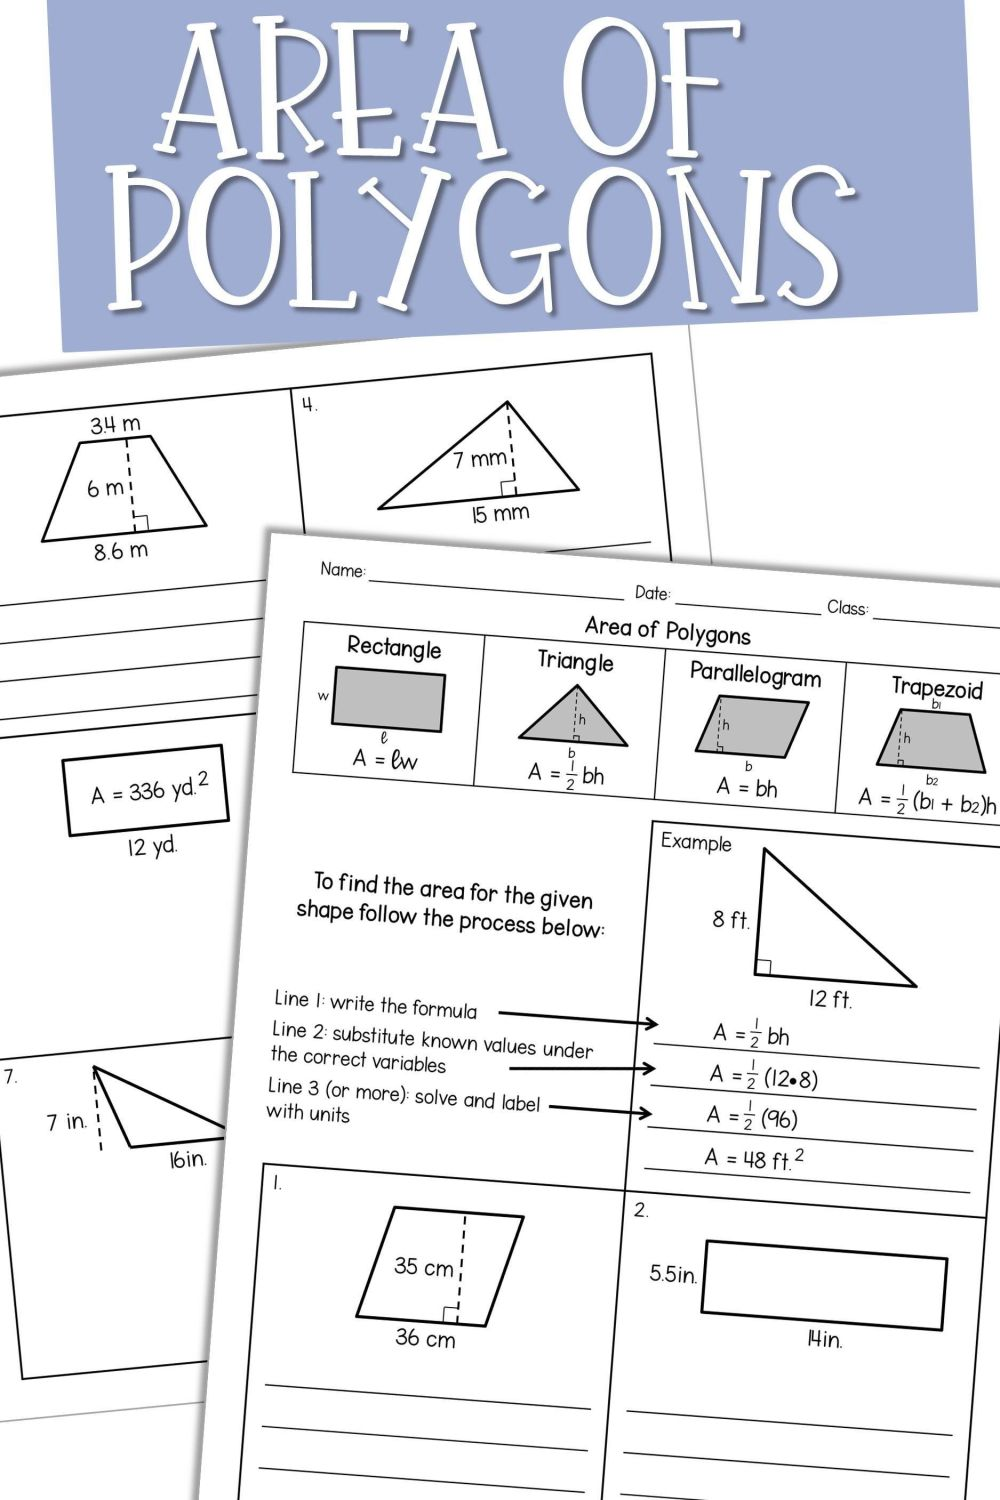 medium resolution of Color Polygons Worksheet   Printable Worksheets and Activities for  Teachers